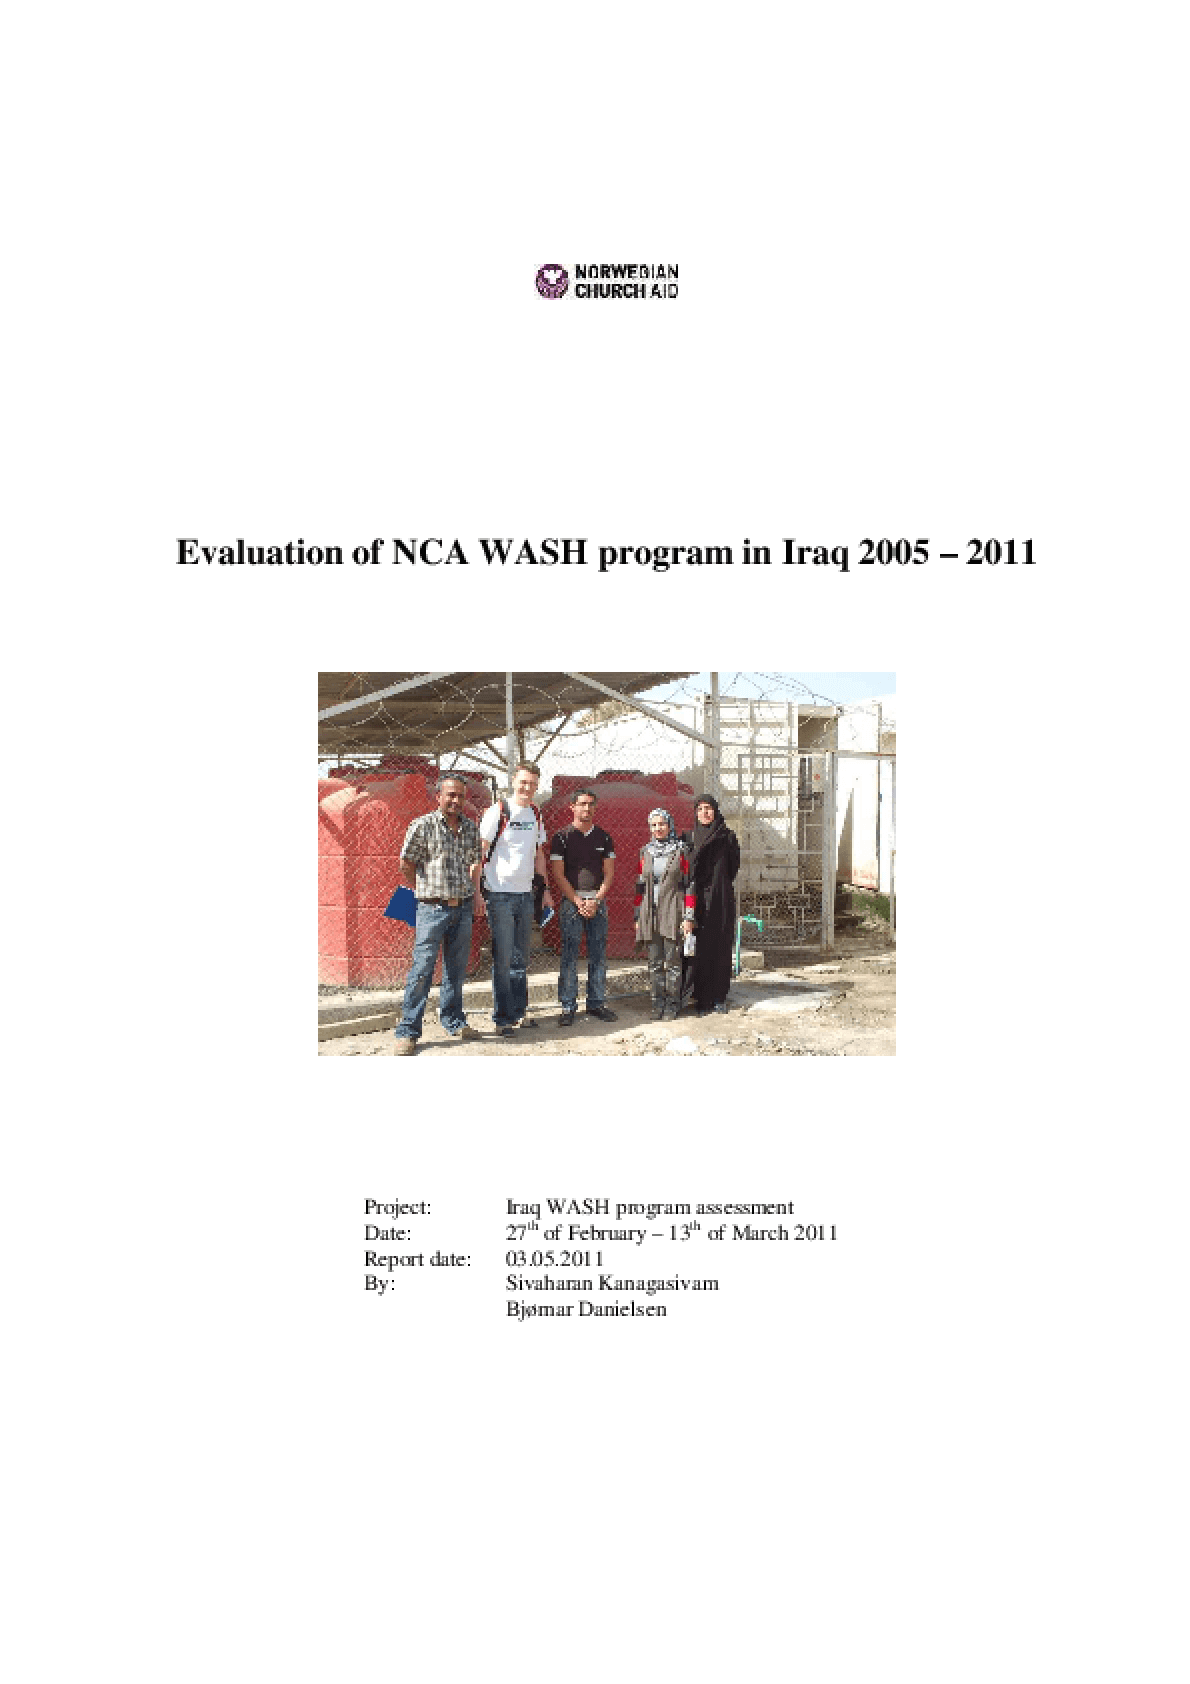 Evaluation of NCA WASH Program in Iraq, 2005-2011